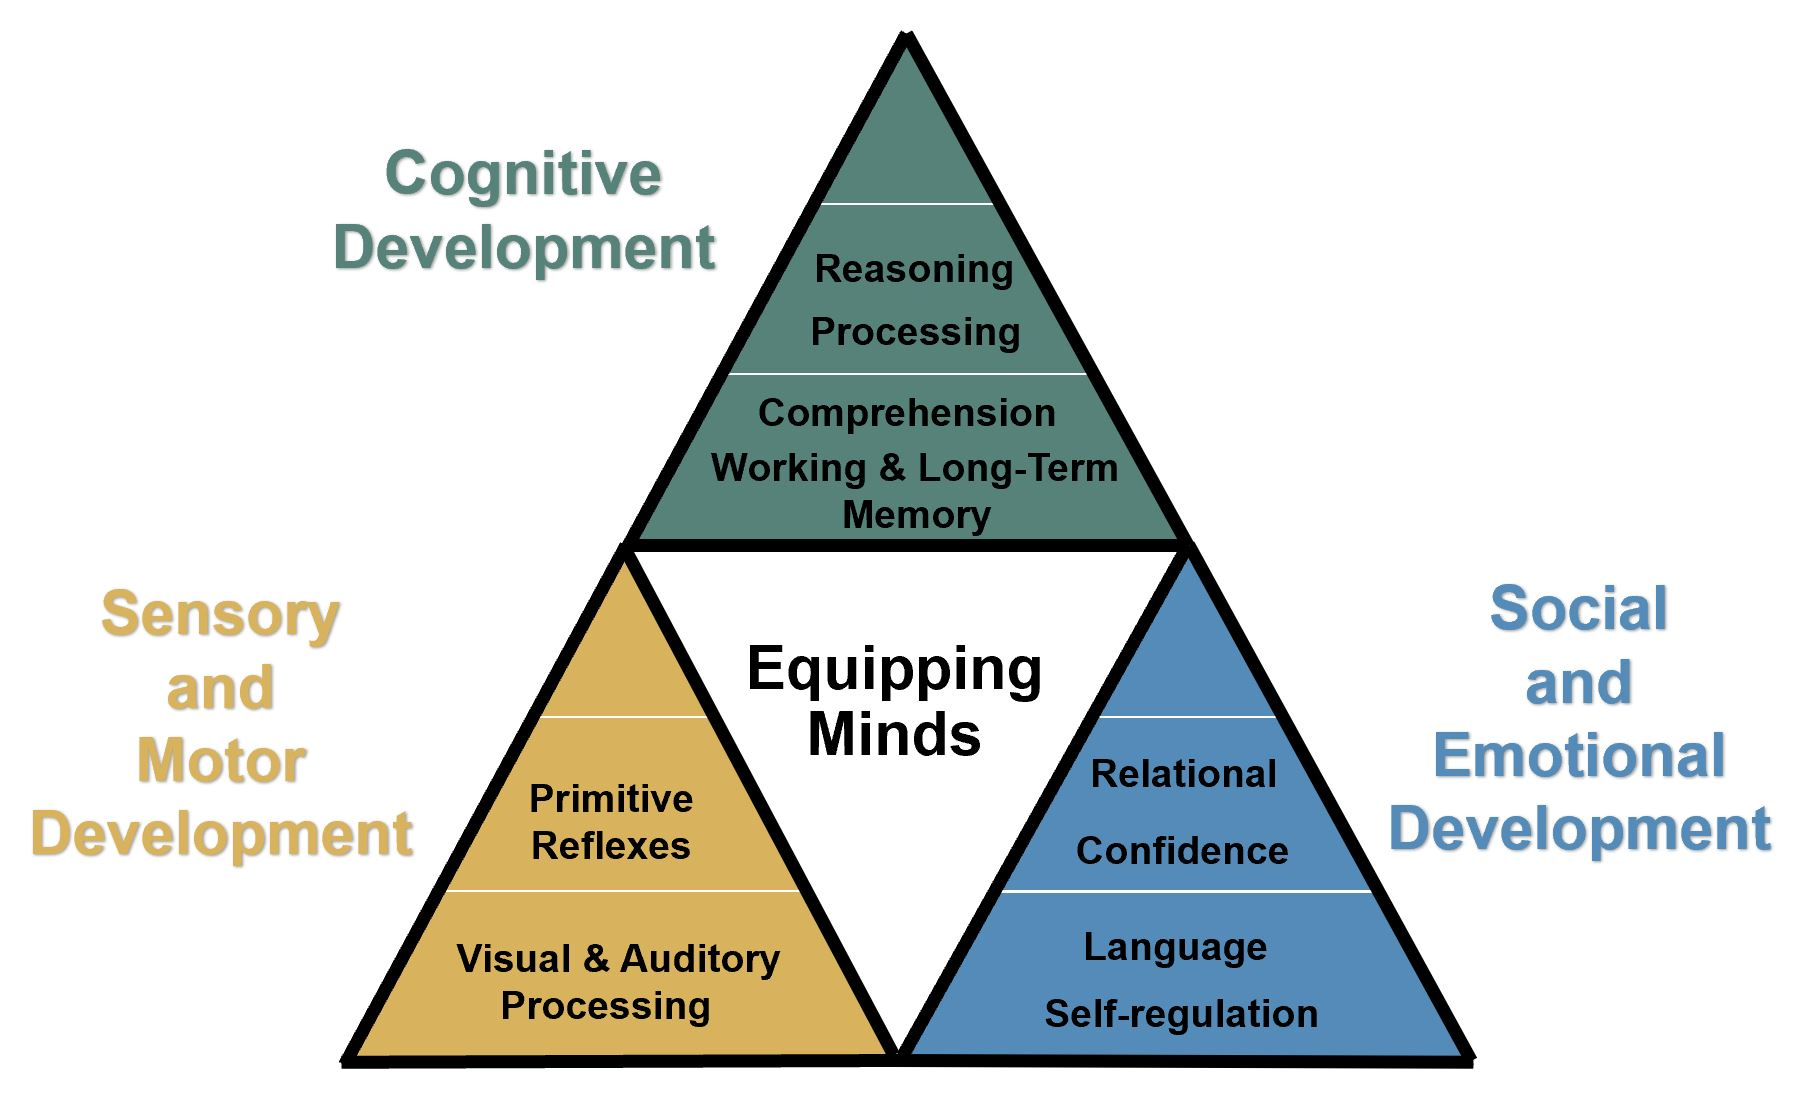 Equipping Minds